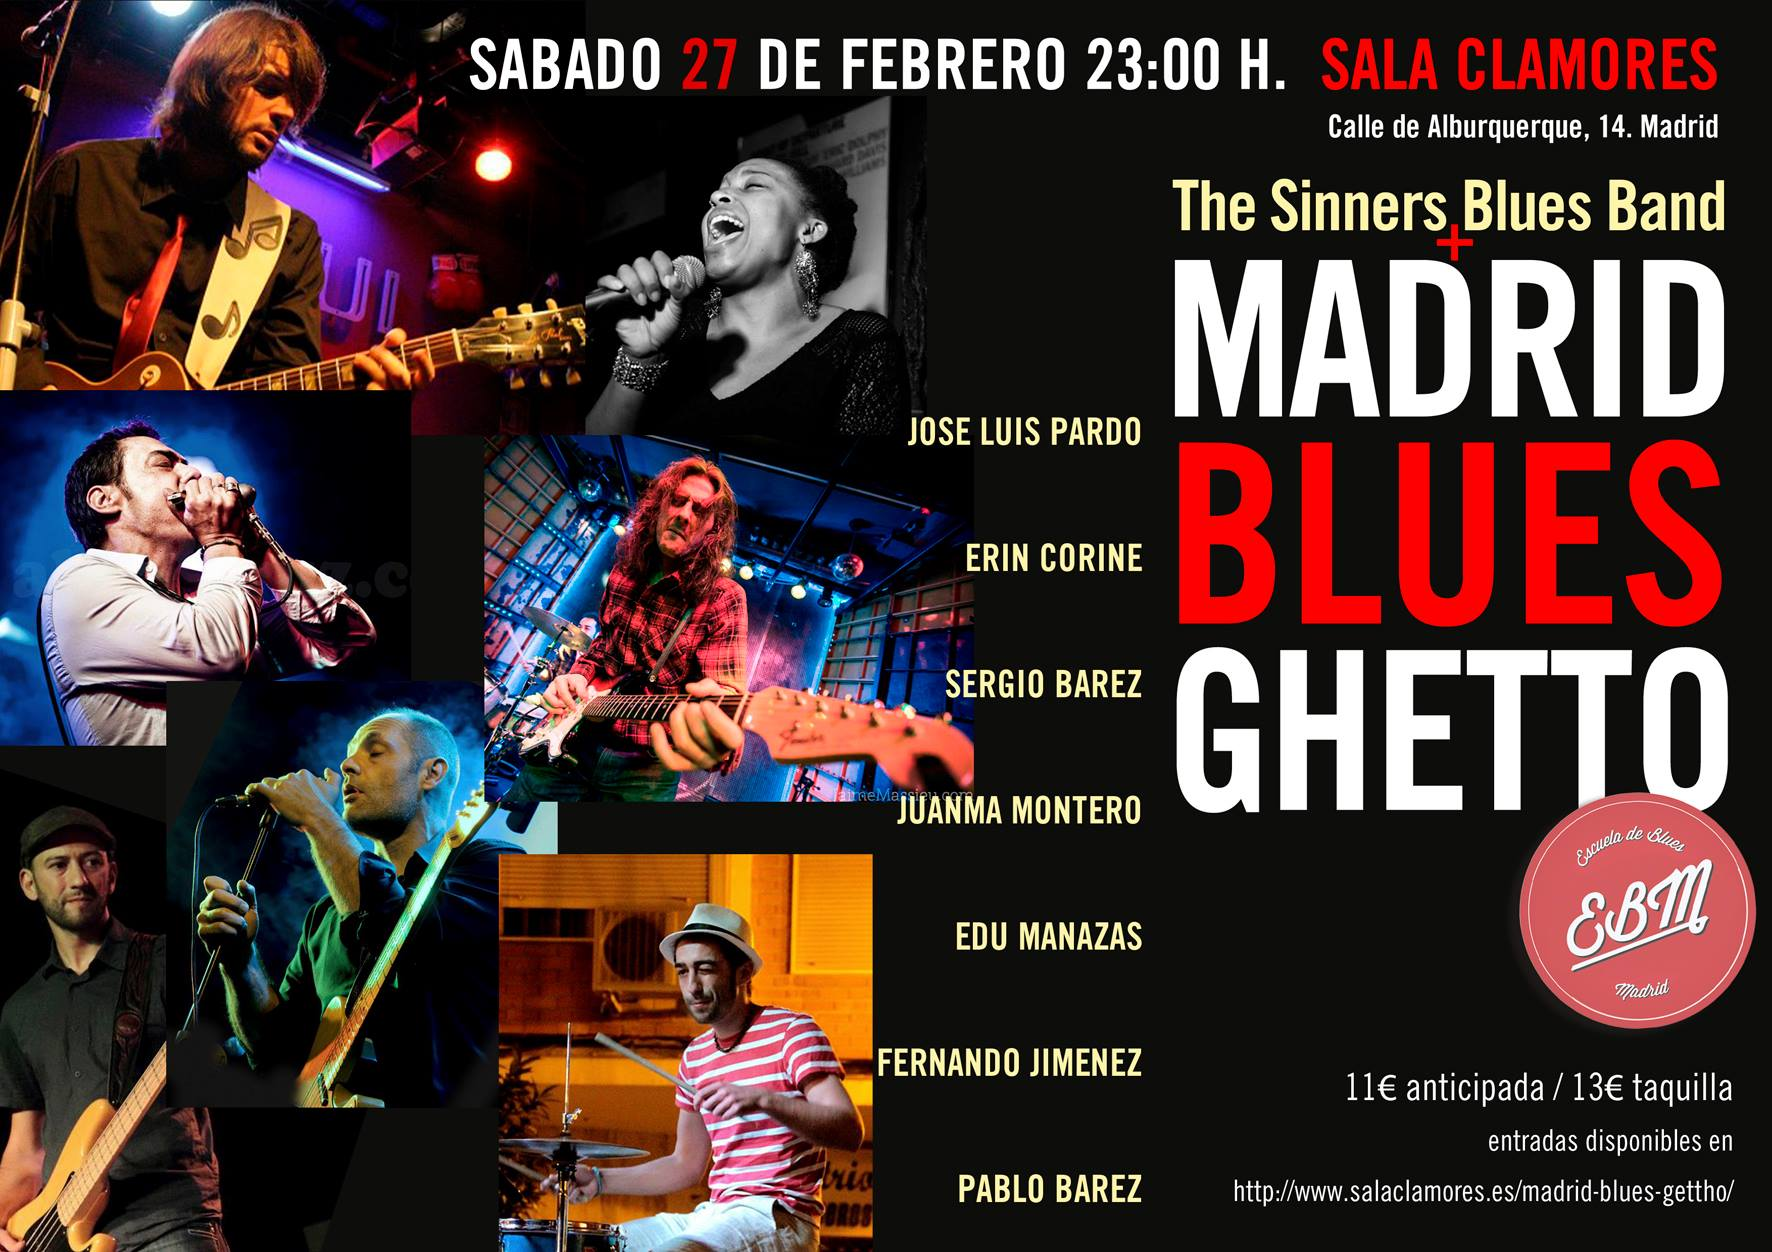 Madrid blues ghetto the sinners en sala clamores for Sala clamores madrid